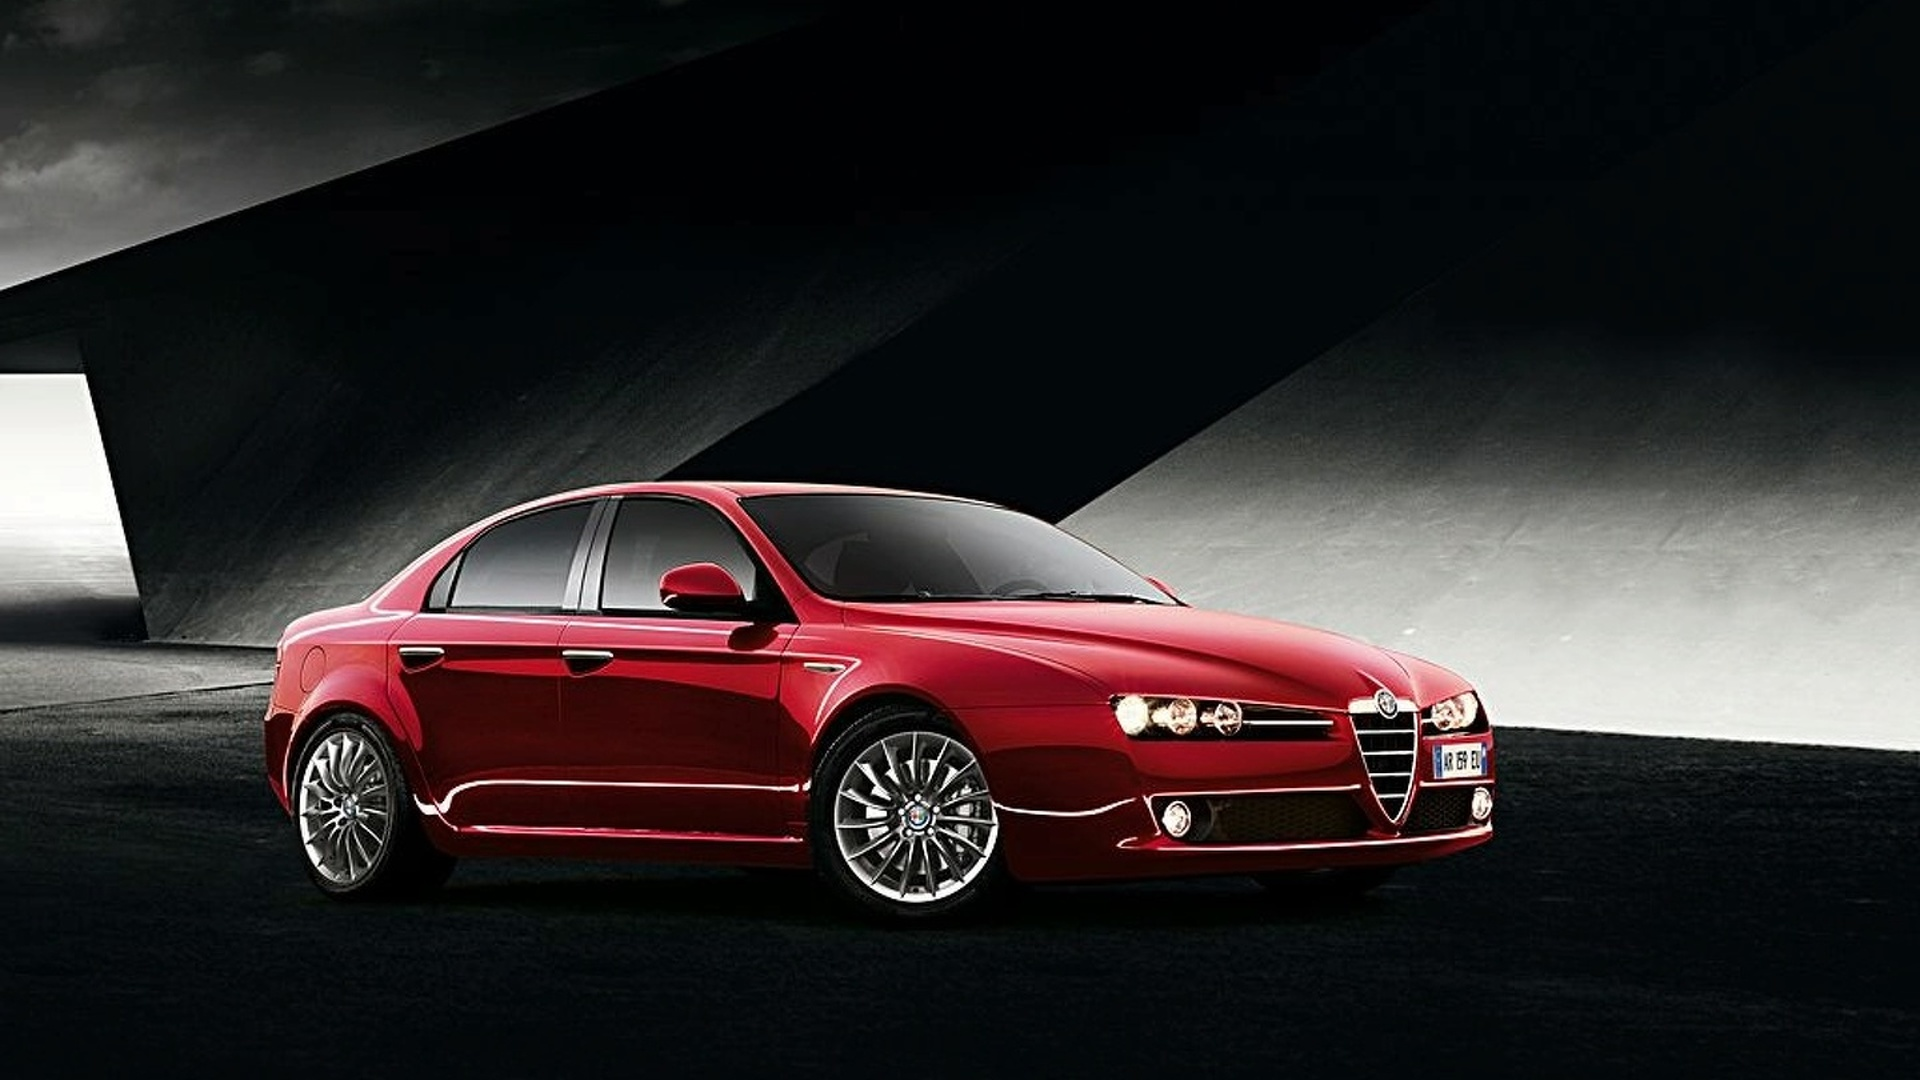 2009 Alfa 159 Surfaces Ahead of Geneva Unveiling